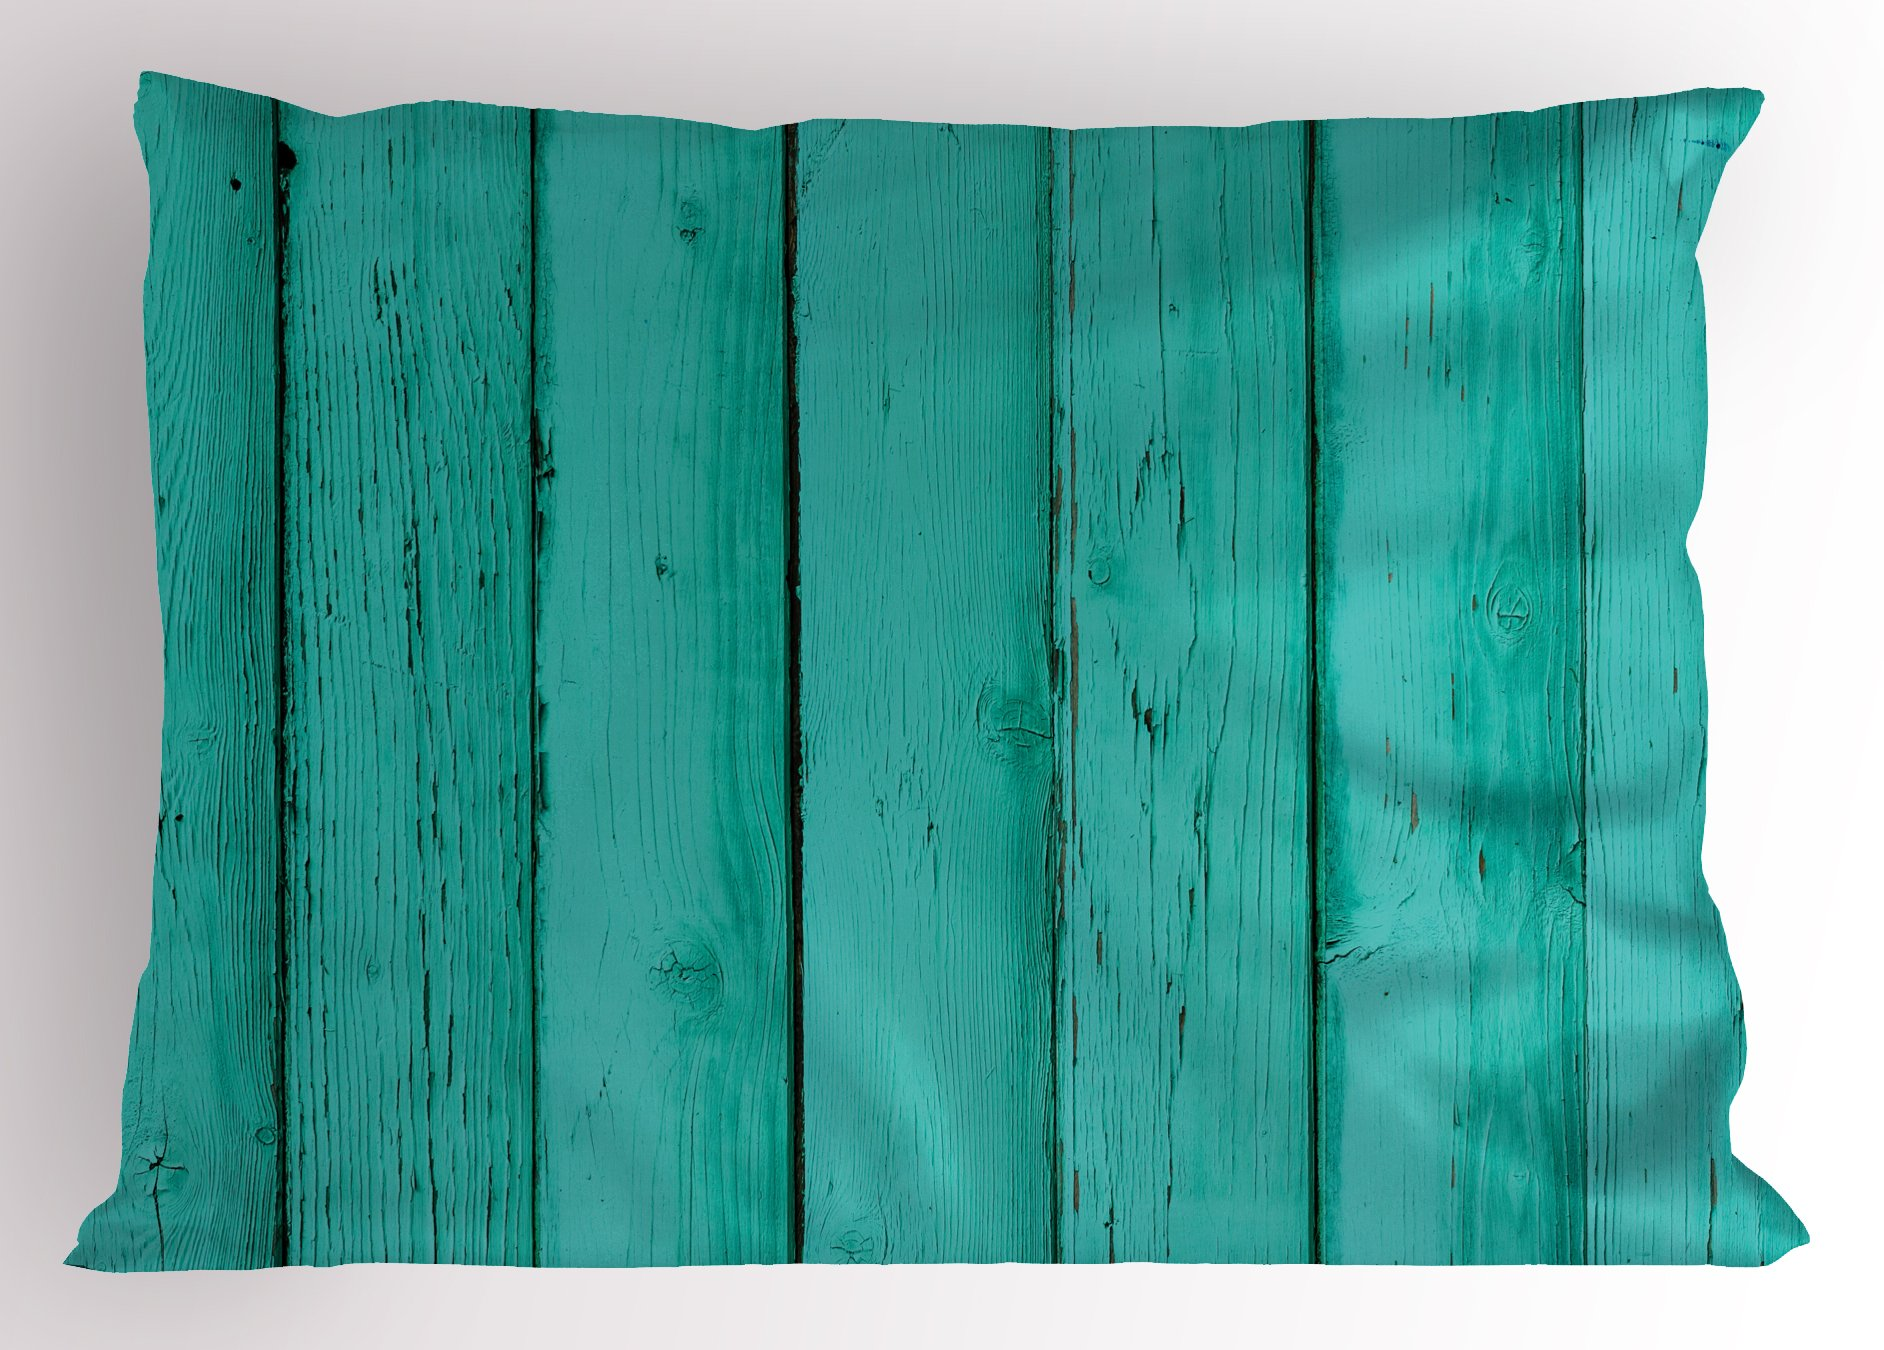 Lunarable Mint Pillow Sham, Old Wood Rustic Oak Plank Background with Vertical Striped Vivid Woods Farm Barn Image, Decorative Standard King Size Printed Pillowcase, 36 X 20 inches, Sea Green